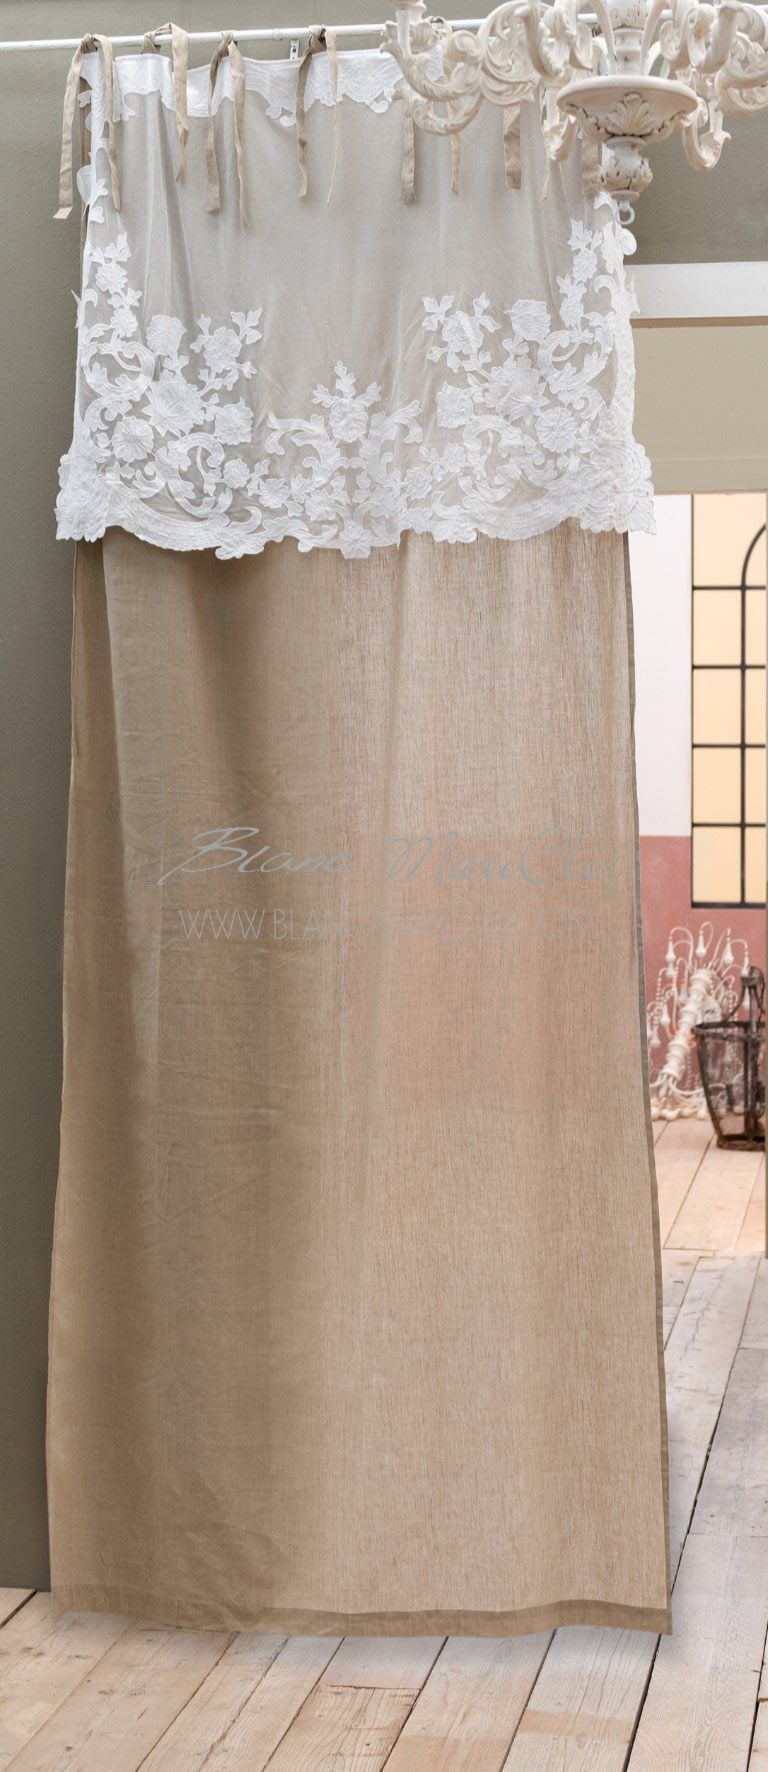 Tende Per Bagno Shabby.Tenda Shabby Chic Con Mantovana Arabella Collection Blanc Mariclo